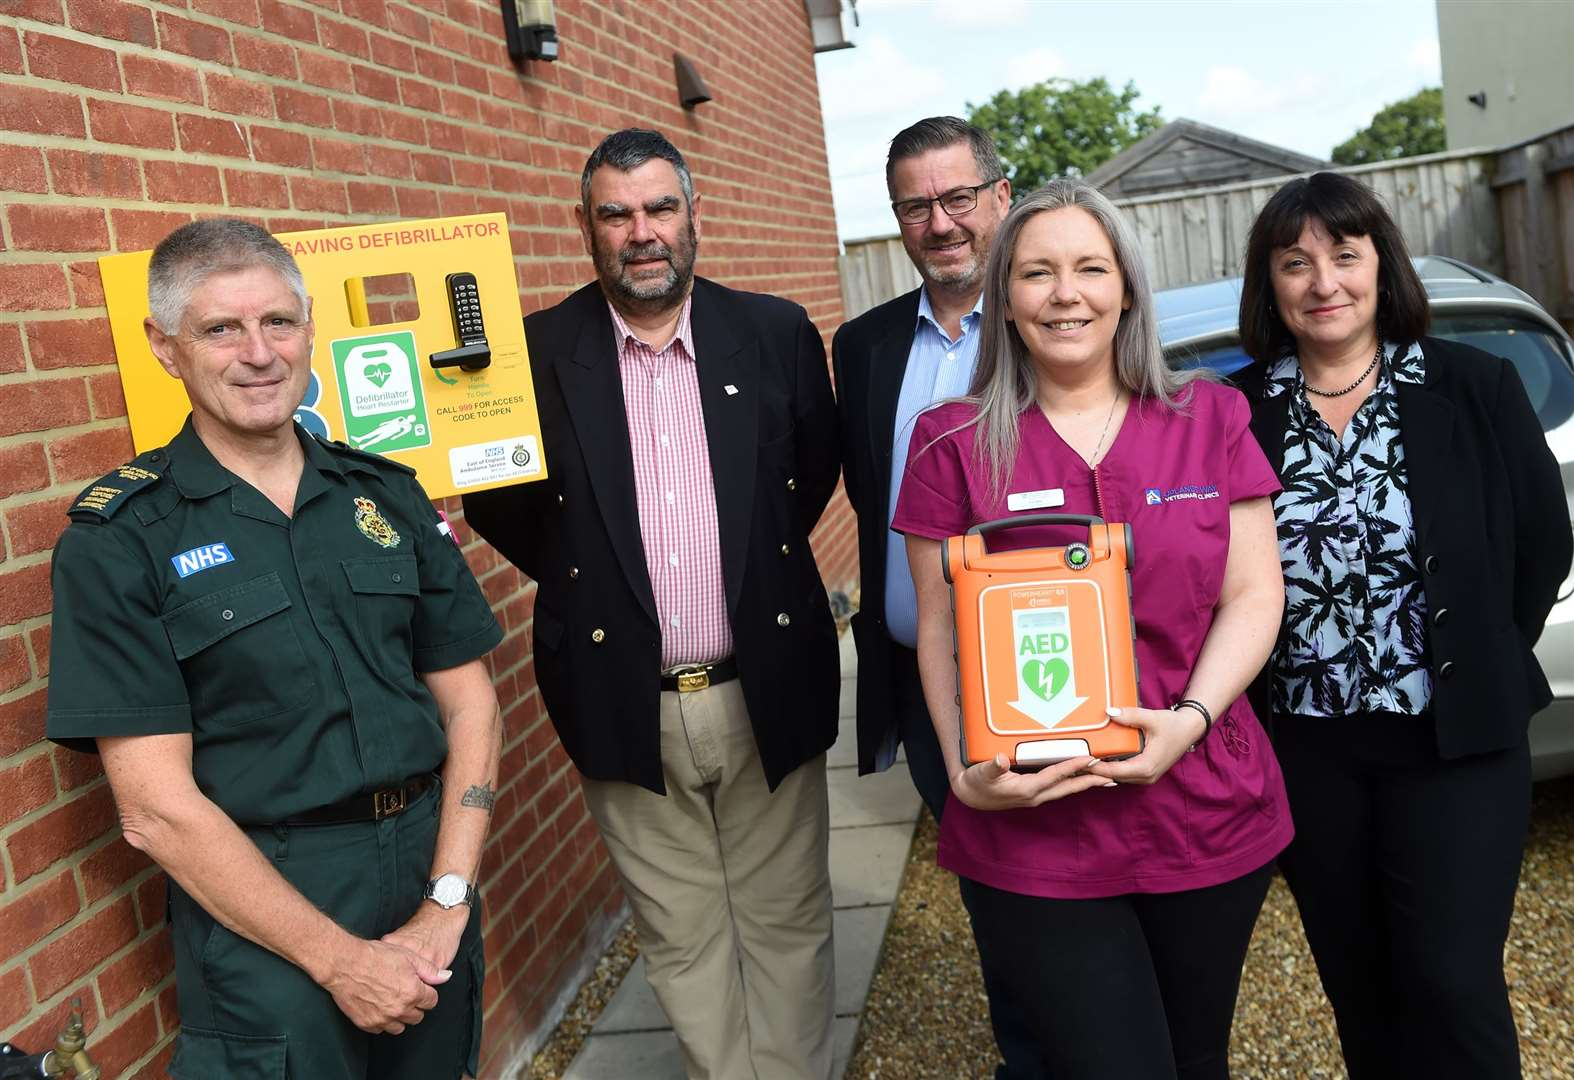 New defibrillator installed in Stanton village